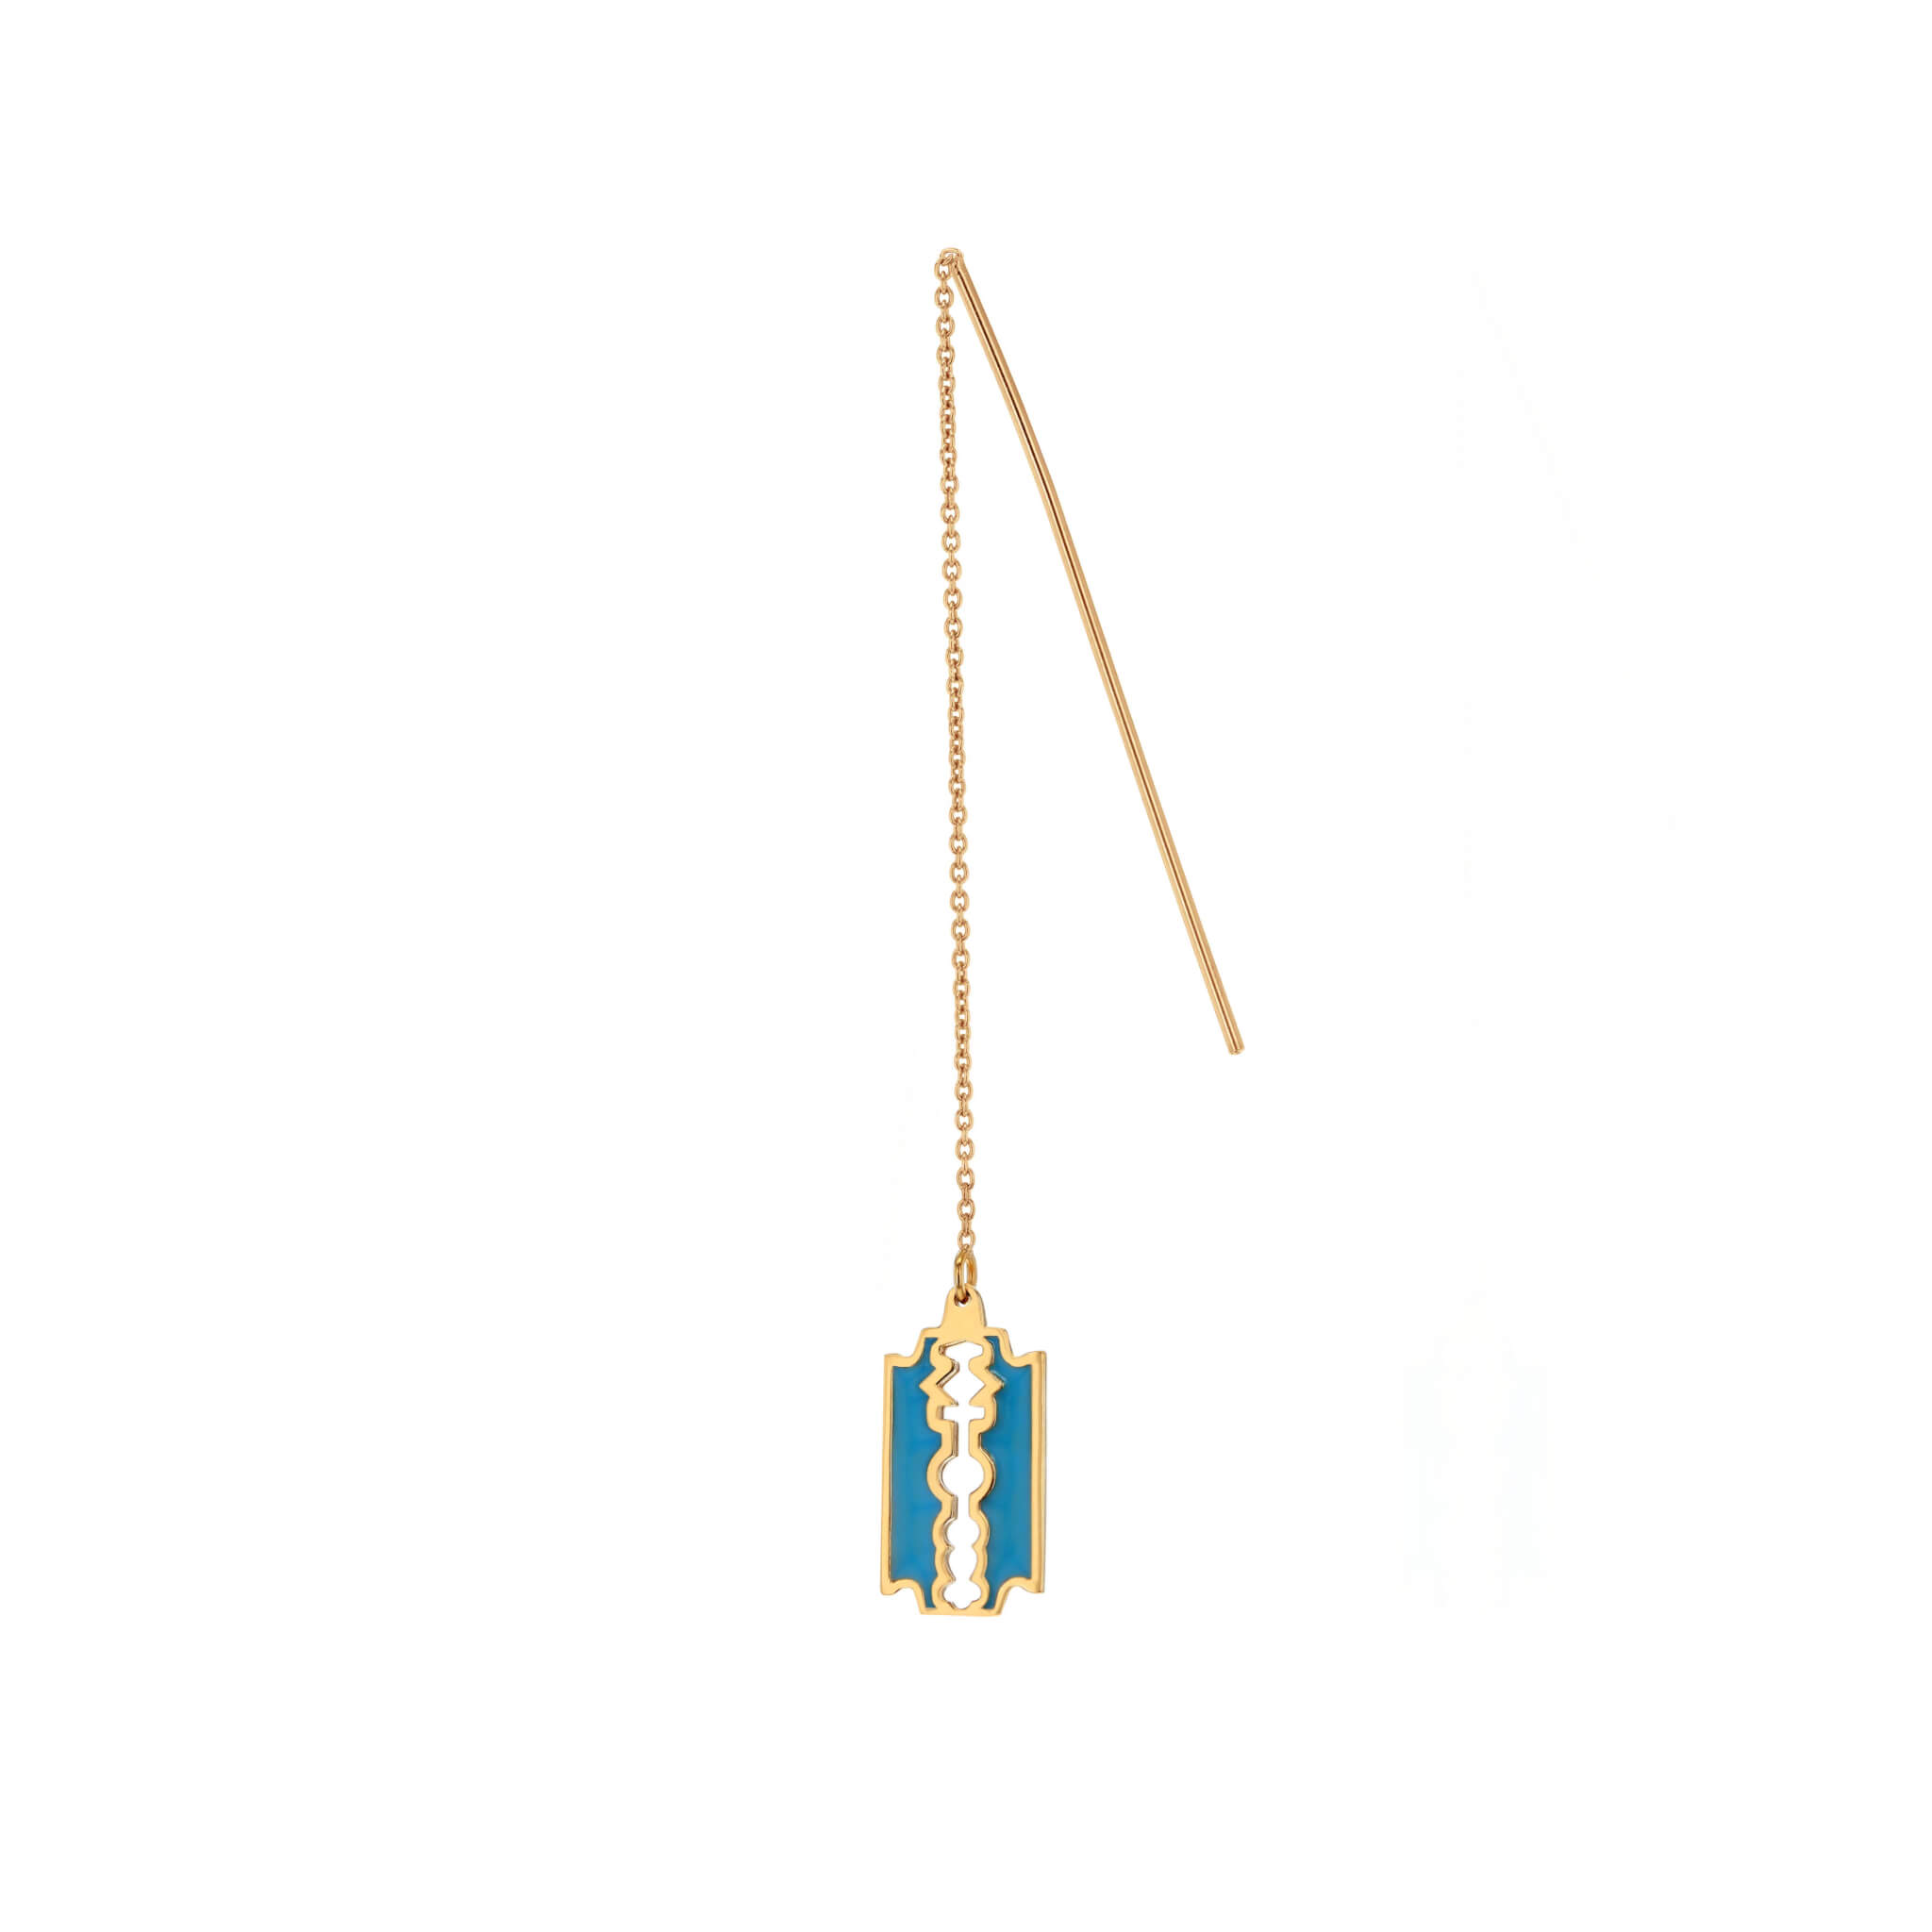 Turquoise-Gold Single Razor B Pull Through Earring